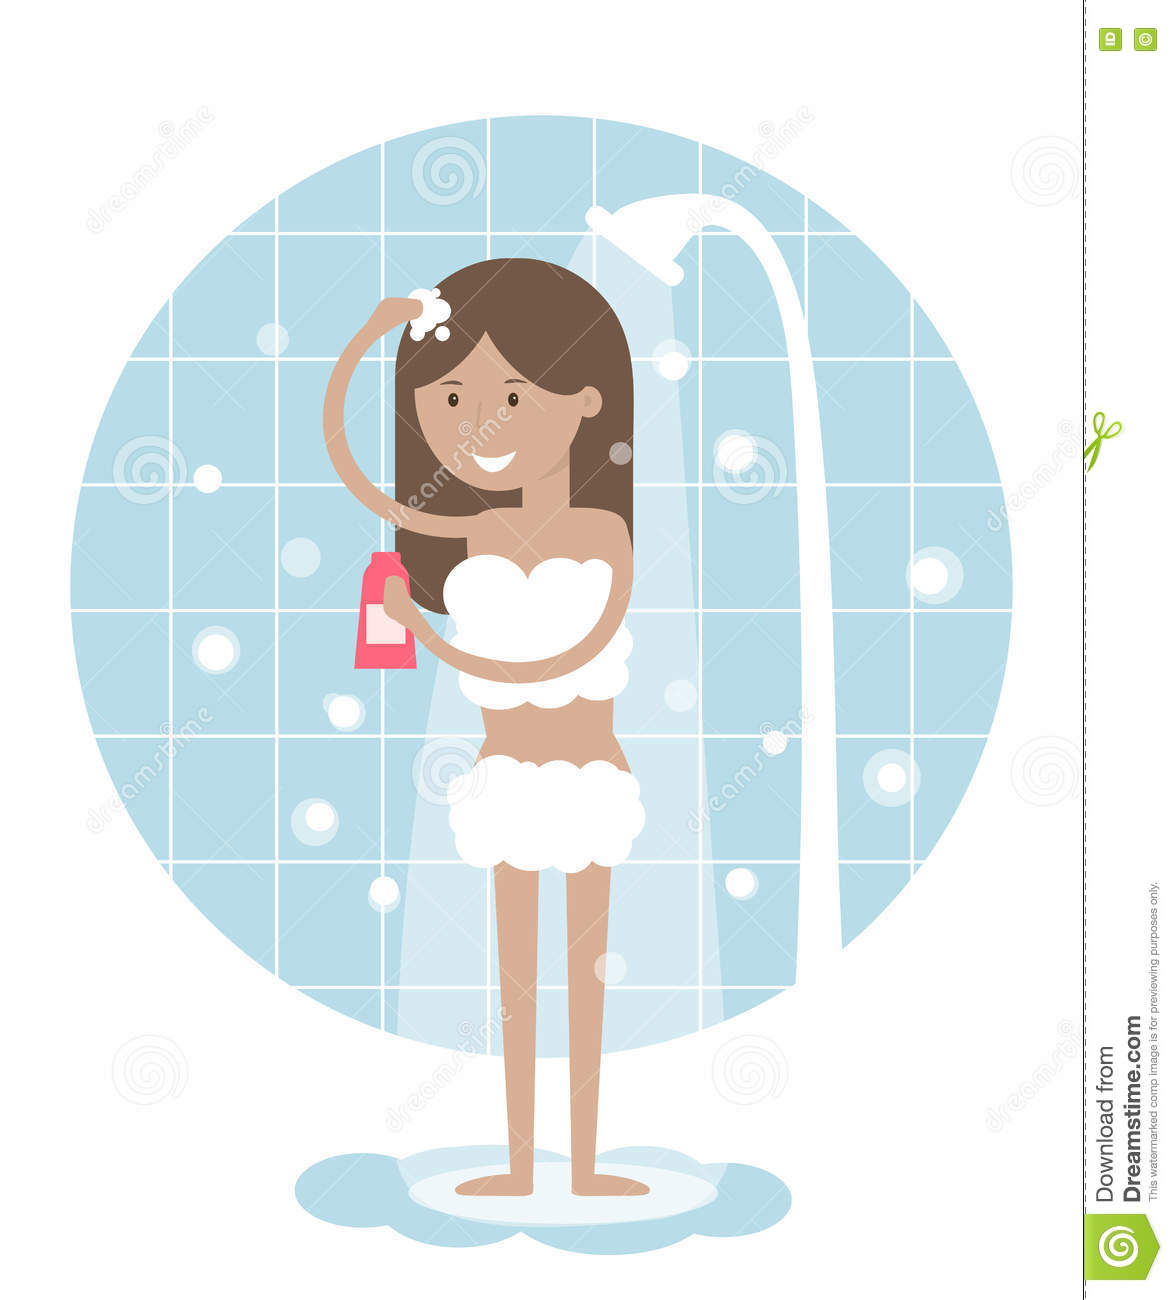 Showering clipart.  collection of shower